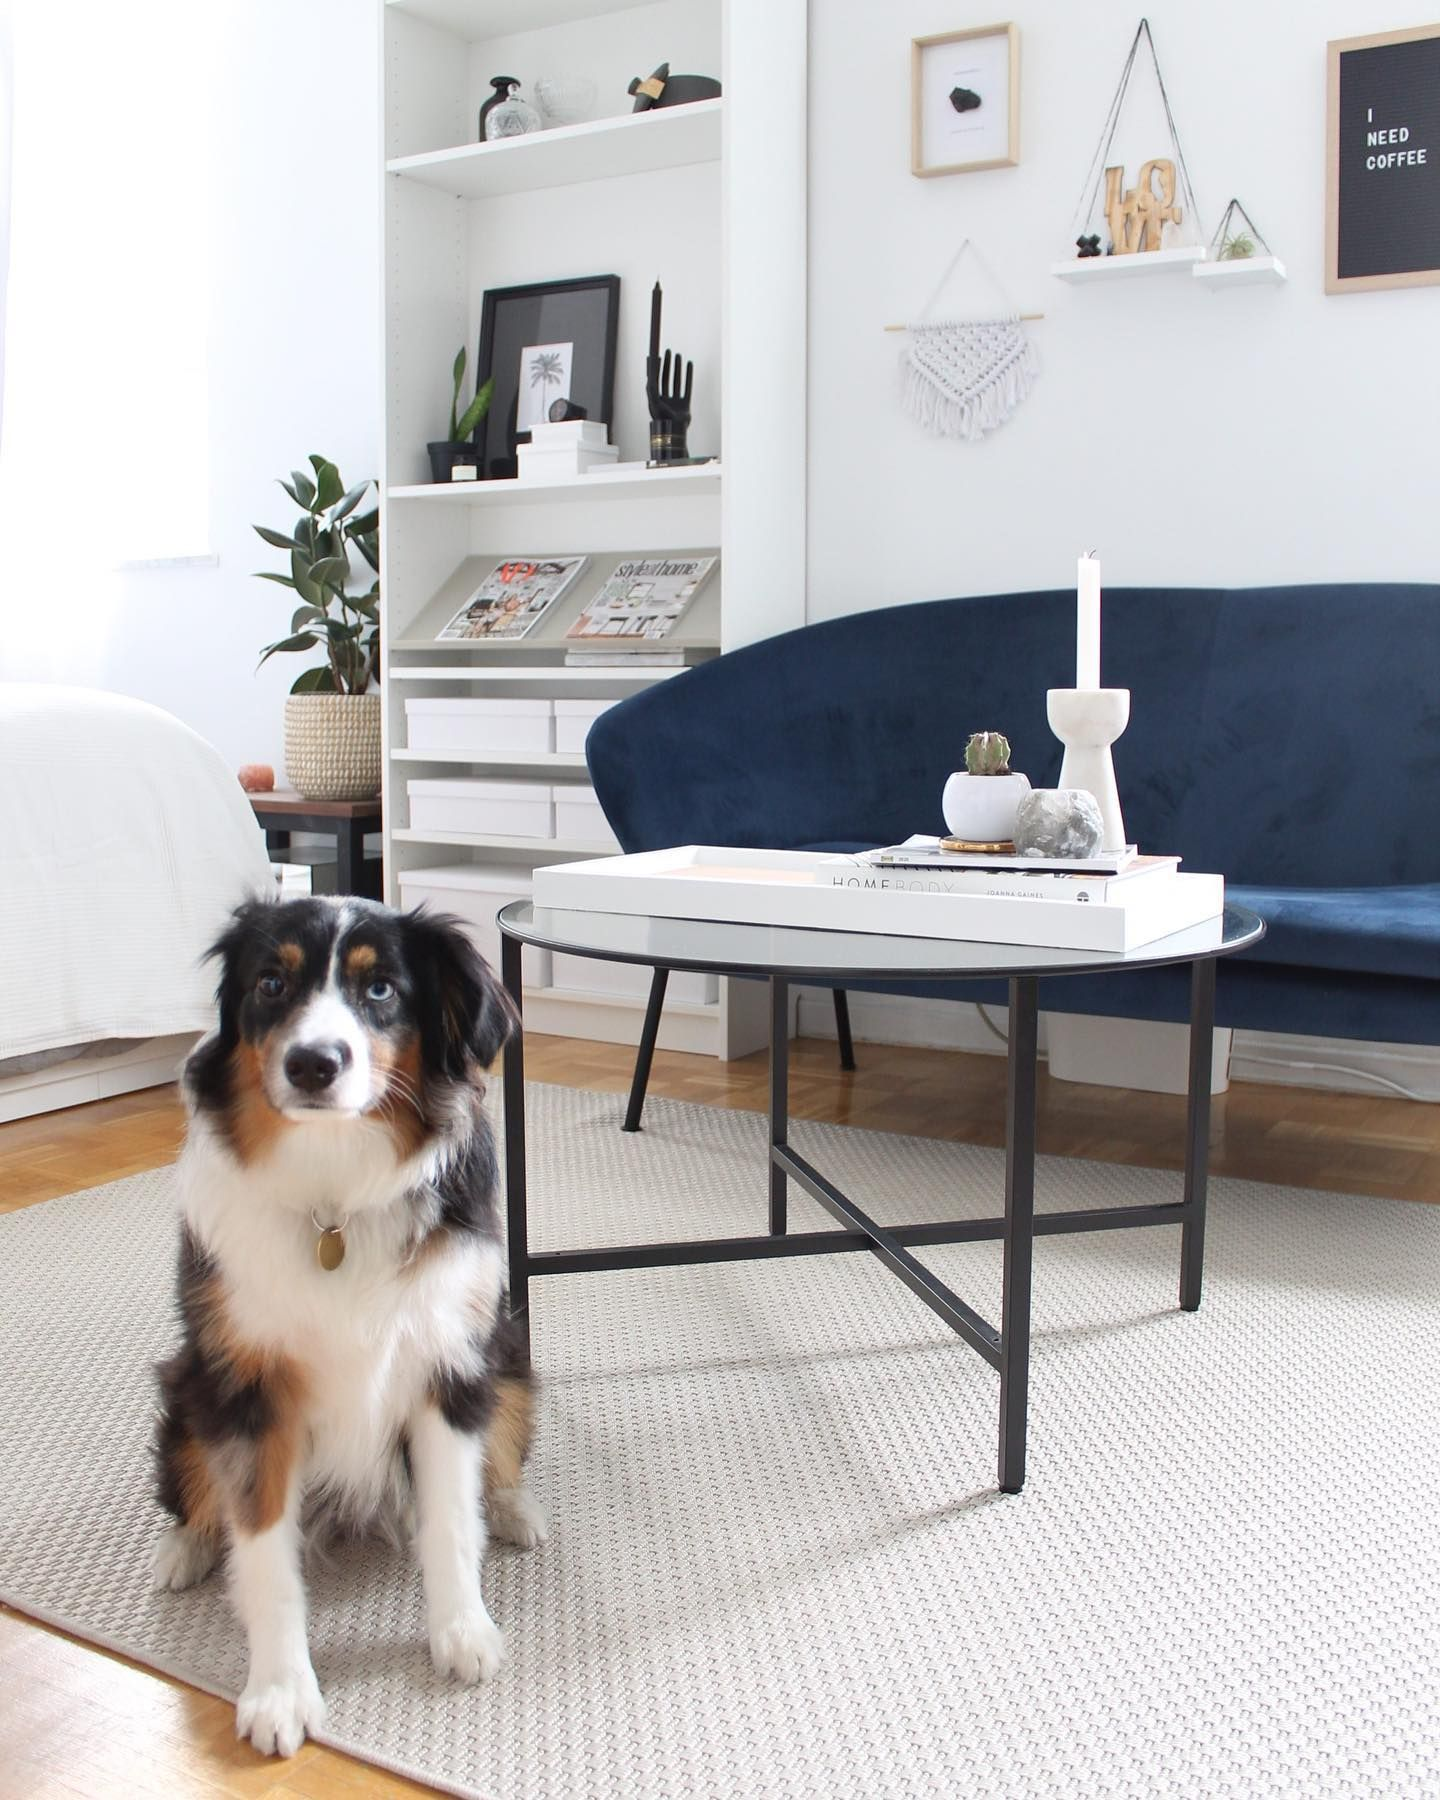 The Easiest Ikea Hack Removing The Bottom Shelf Of The Ikea Vittsjo Coffee Table Makes It Look And Feel Airy And Bright Perfect For A Small Space Our [ 1800 x 1440 Pixel ]